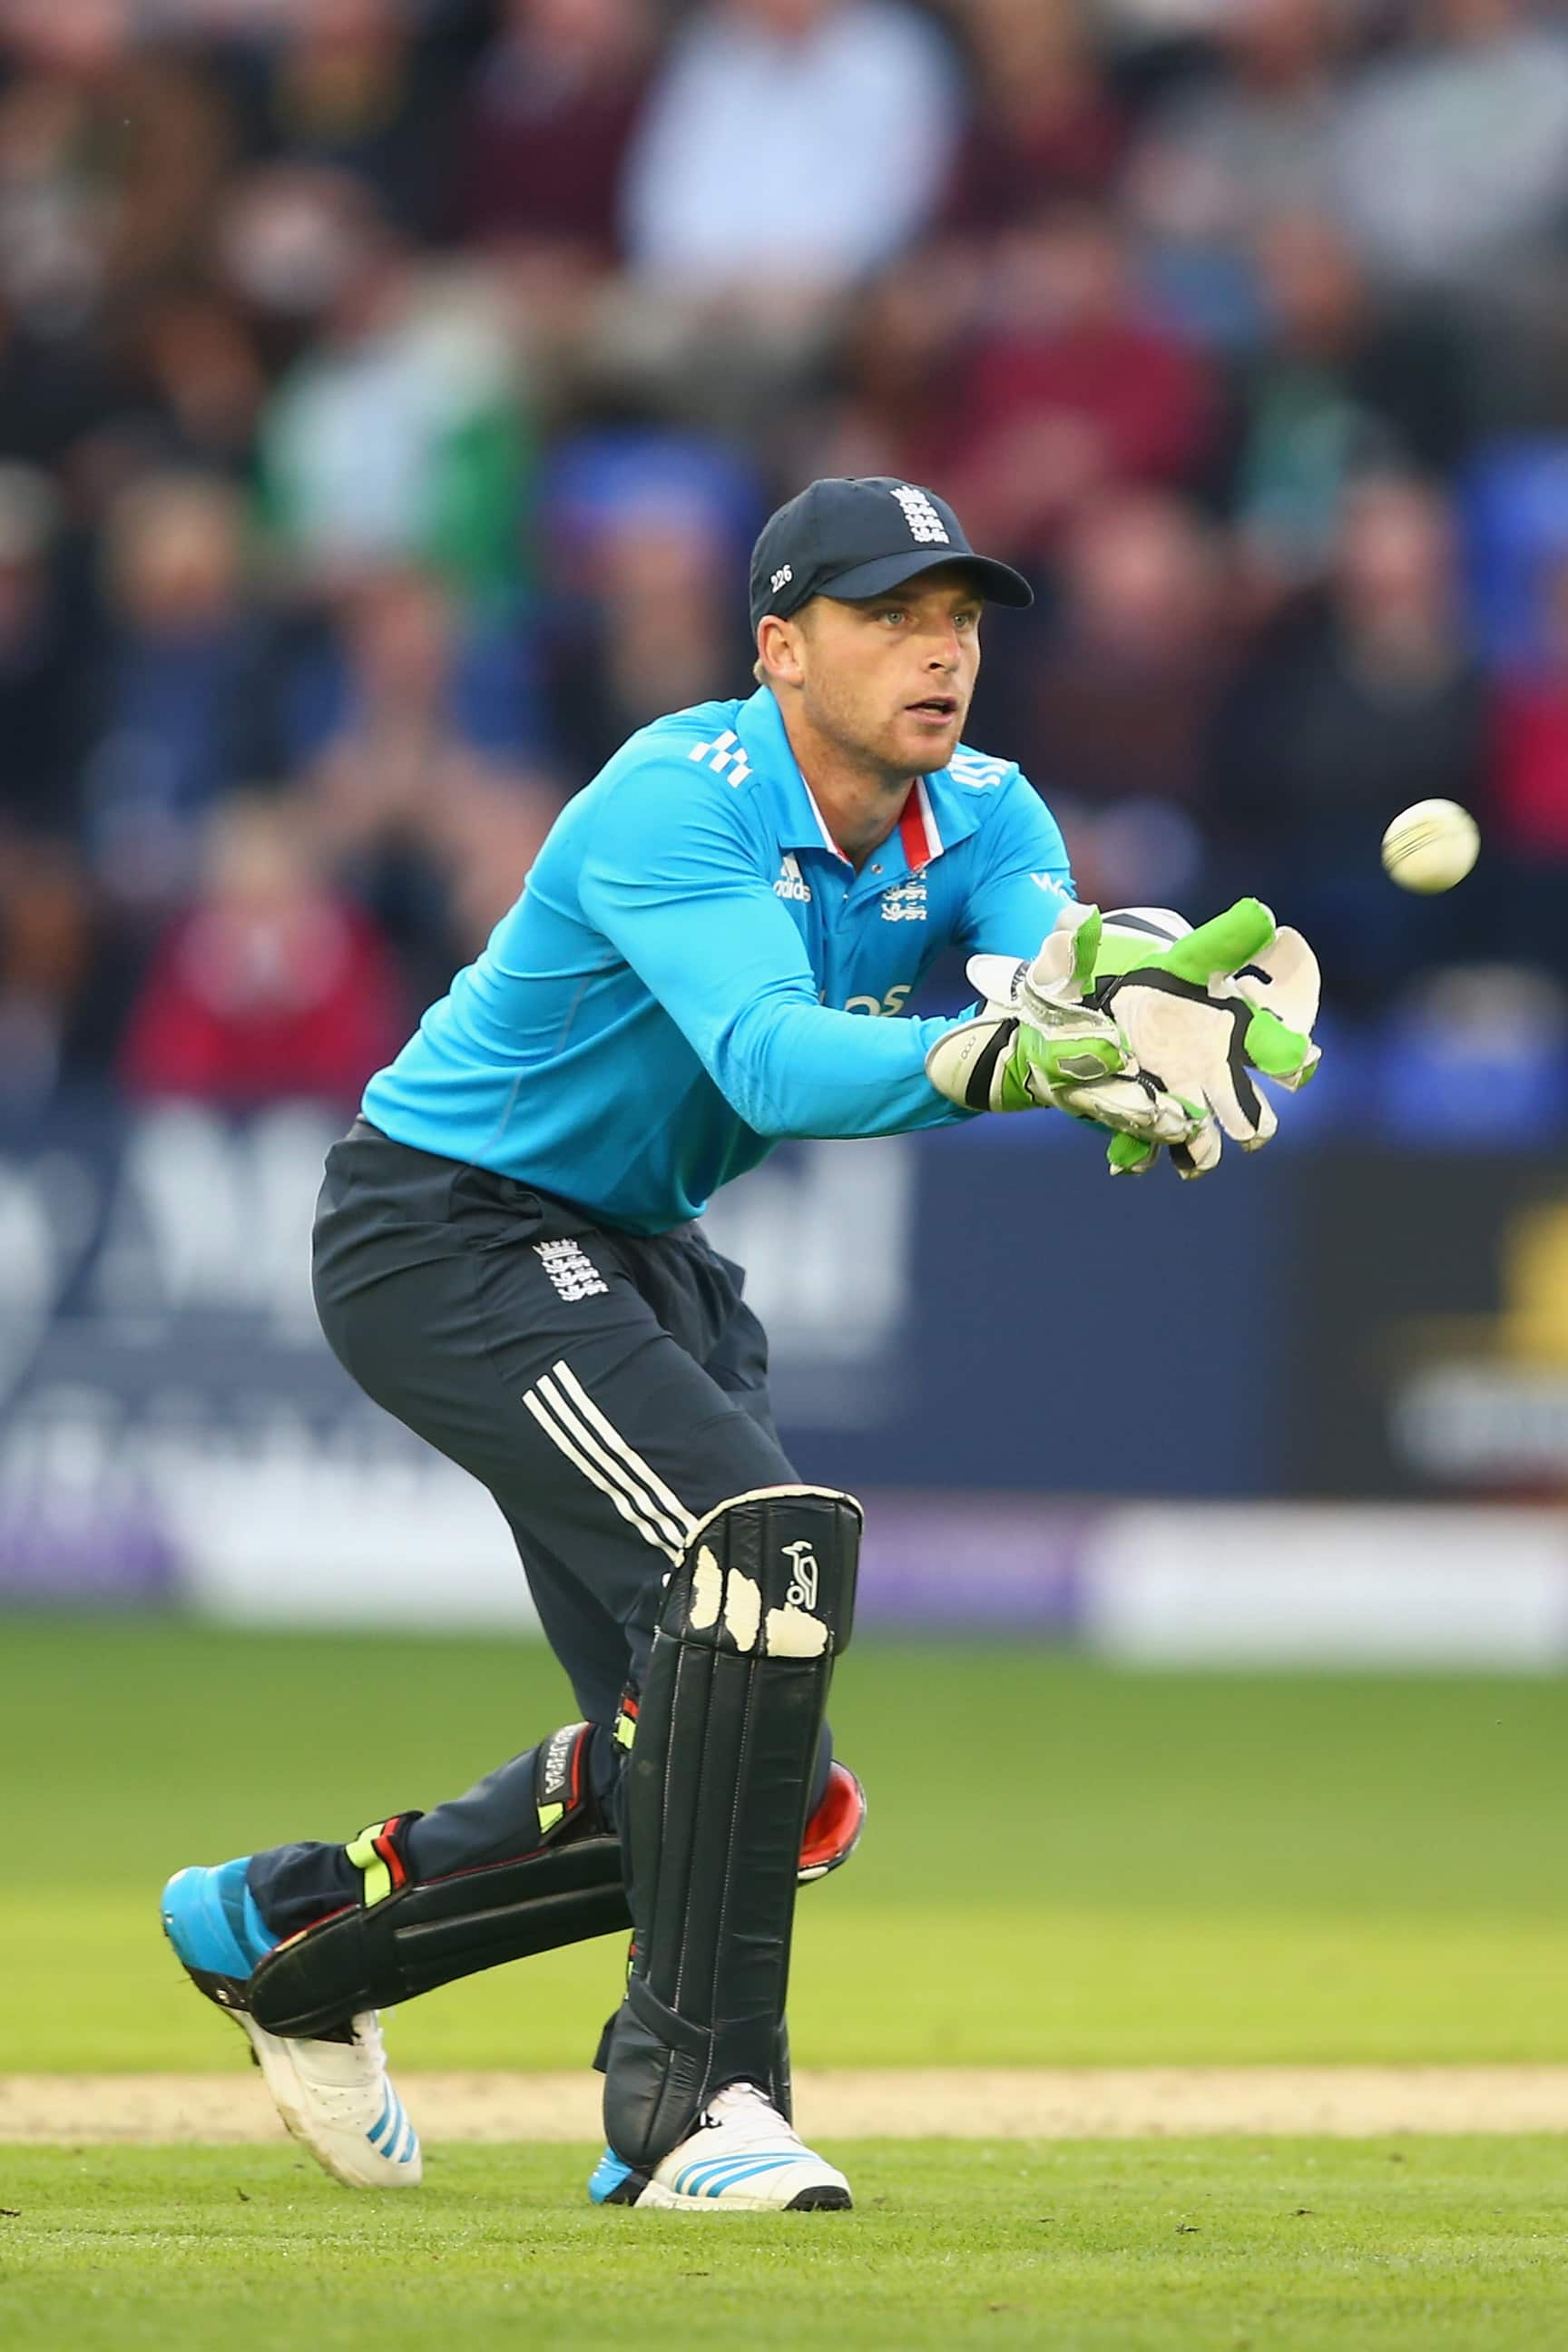 Keeping Score >> Sri Lanka vs England 2014: Jos Buttler practices wicketkeeping in nets - Cricket Country